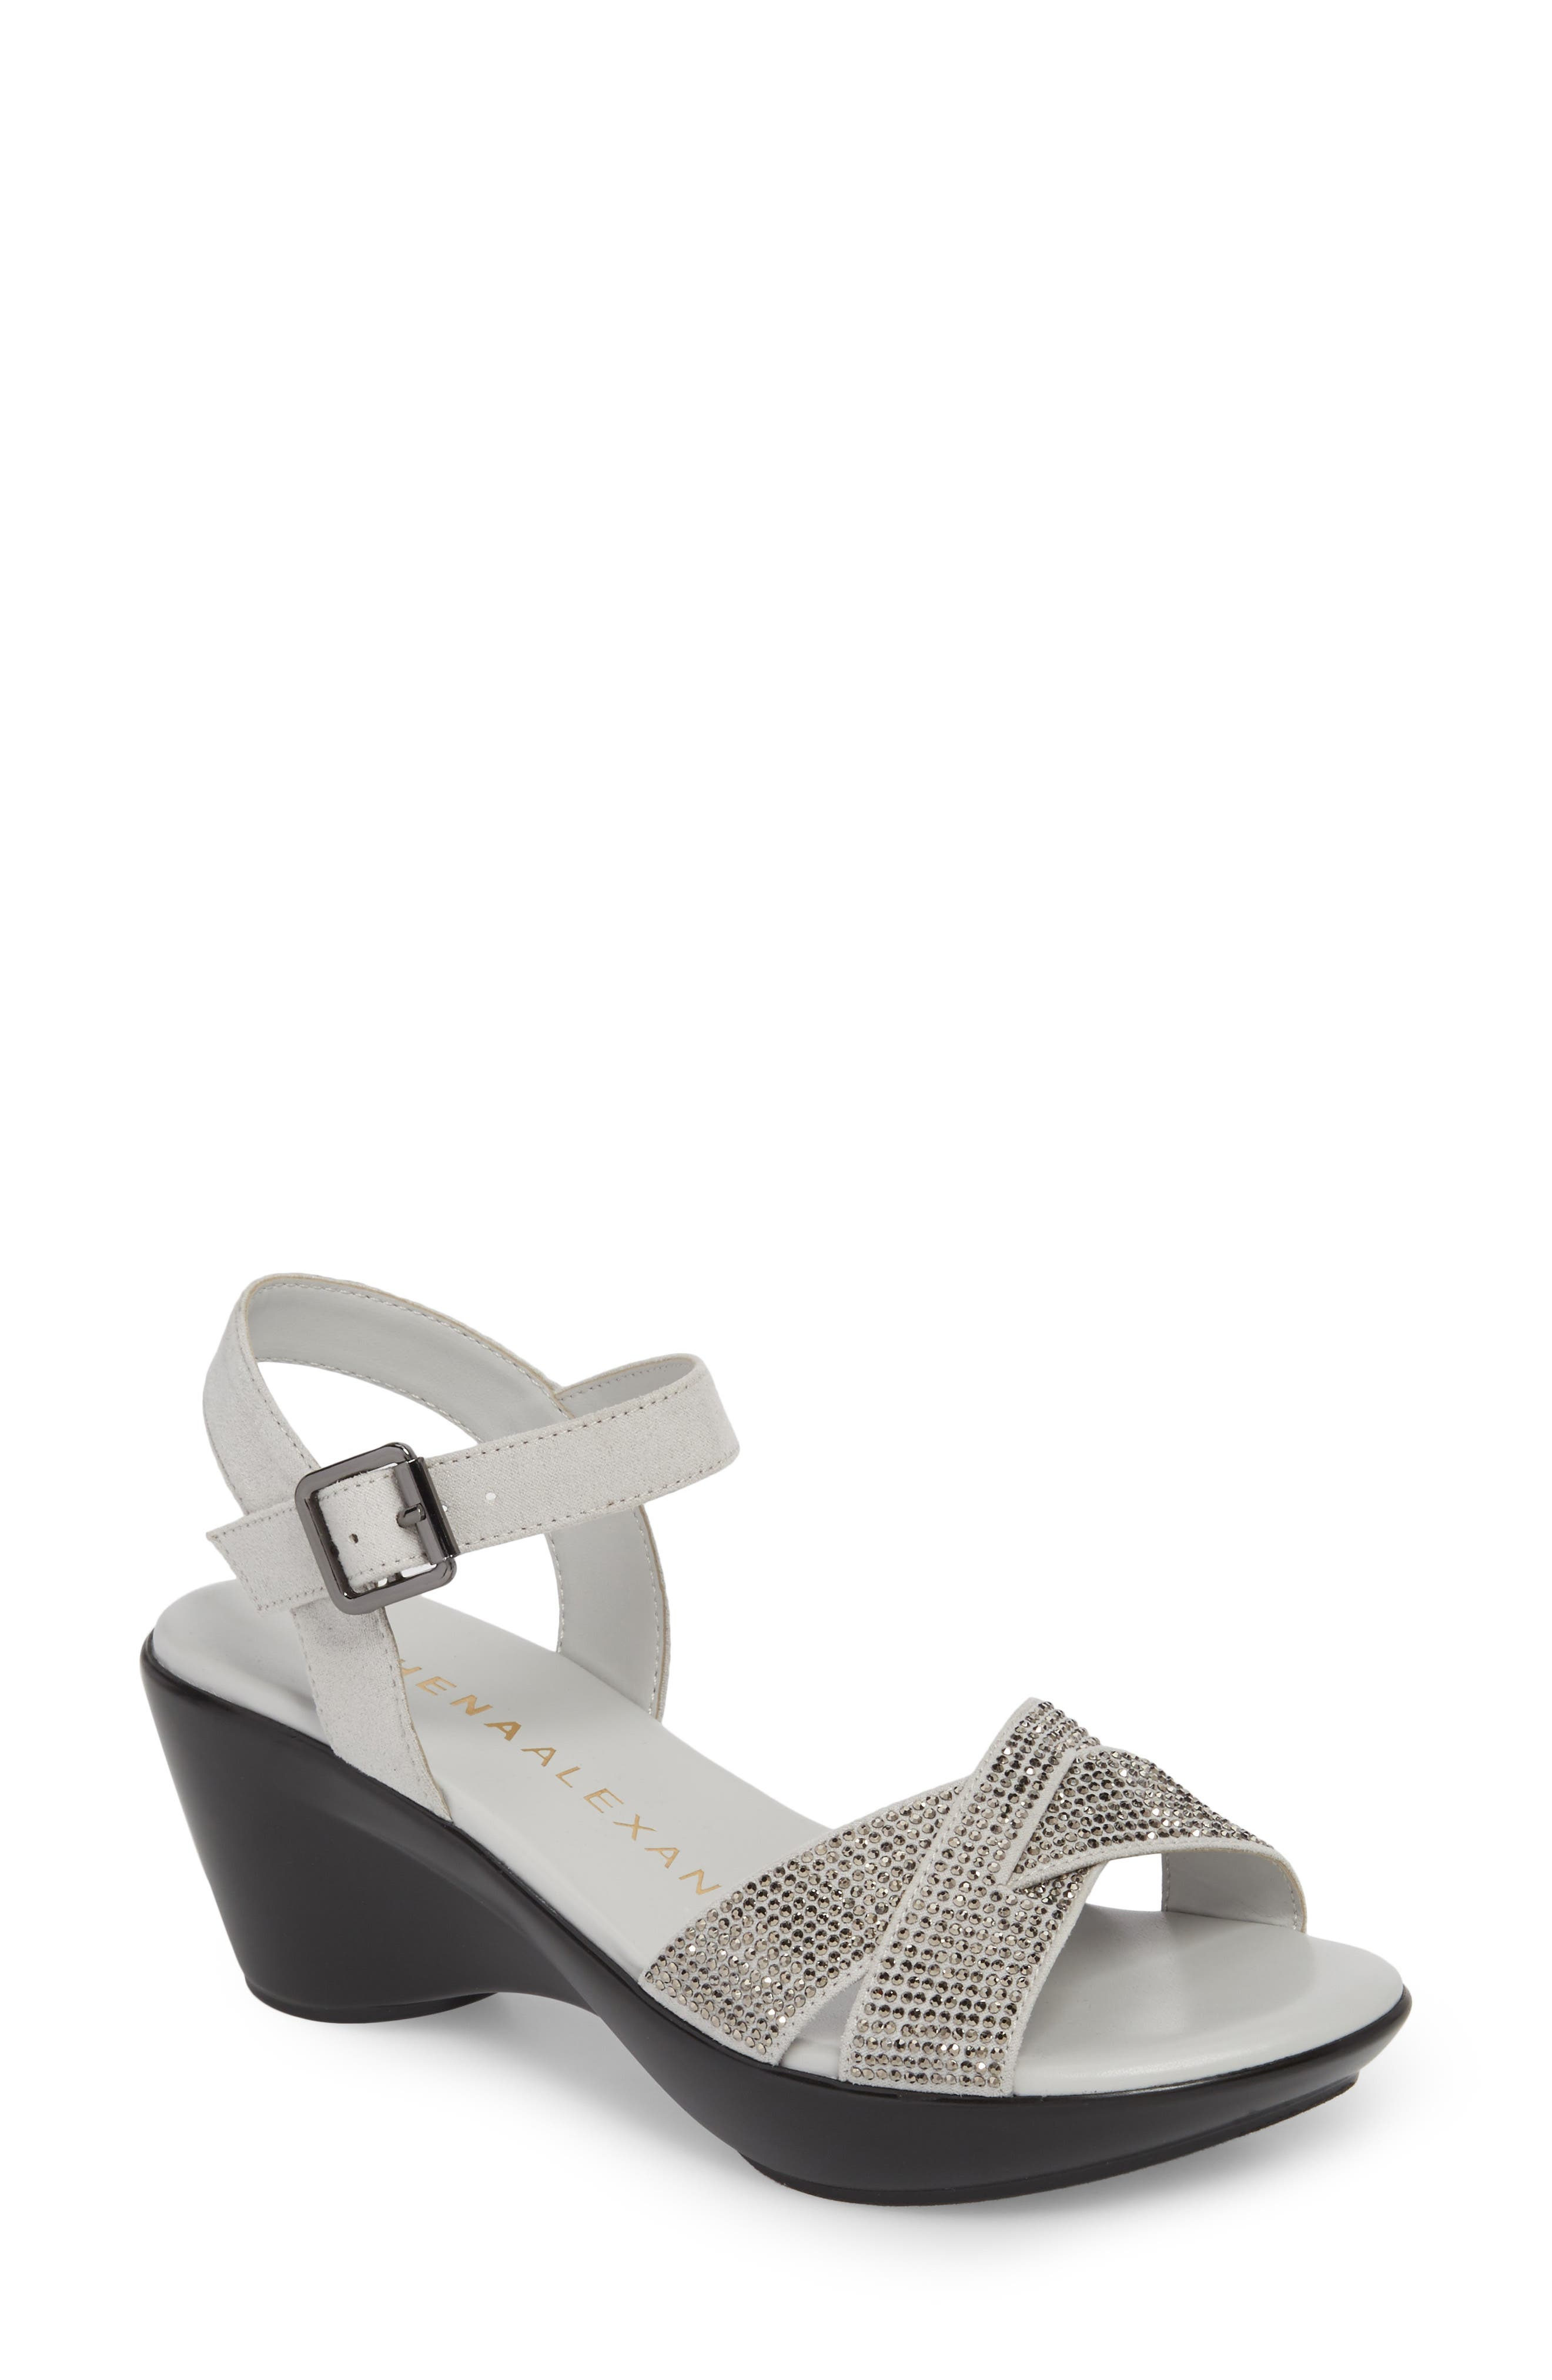 Florence Wedge Sandal,                         Main,                         color, GREY FAUX SUEDE